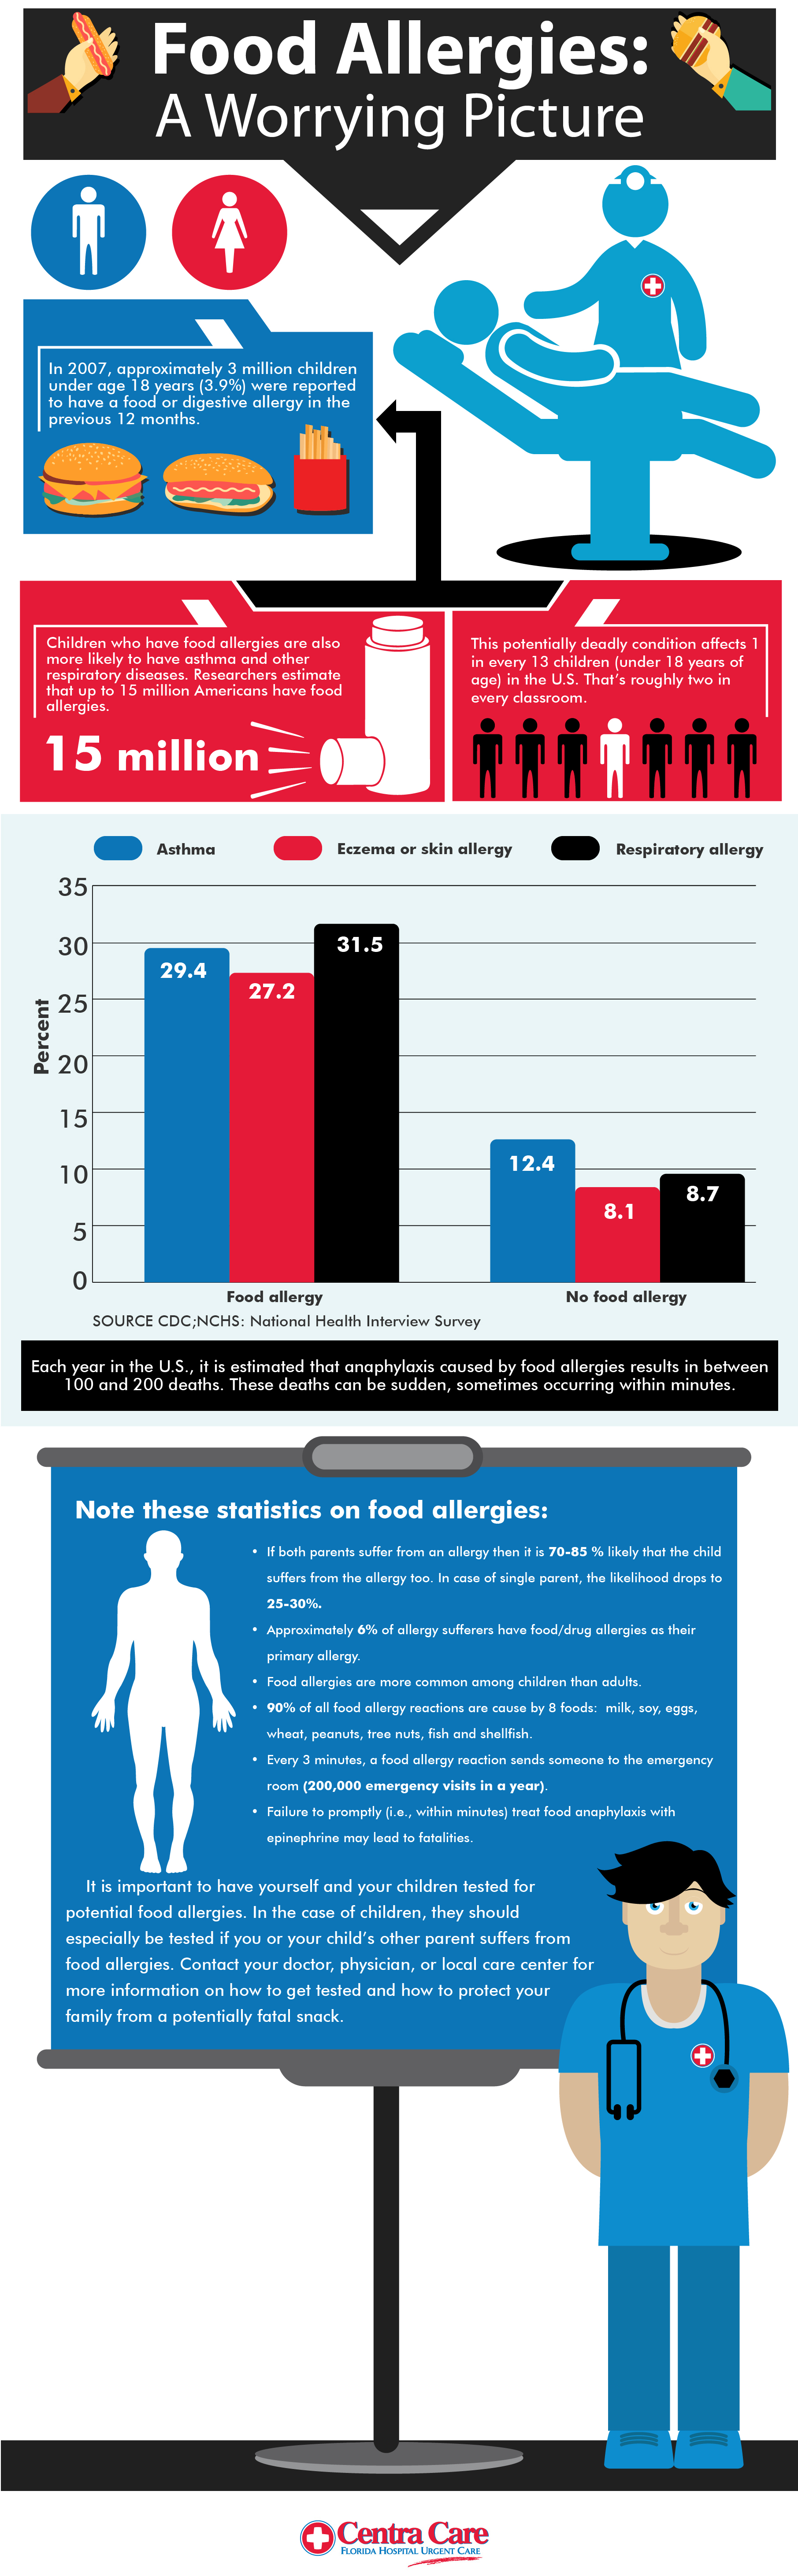 Food Allergies: A Worrying Picture